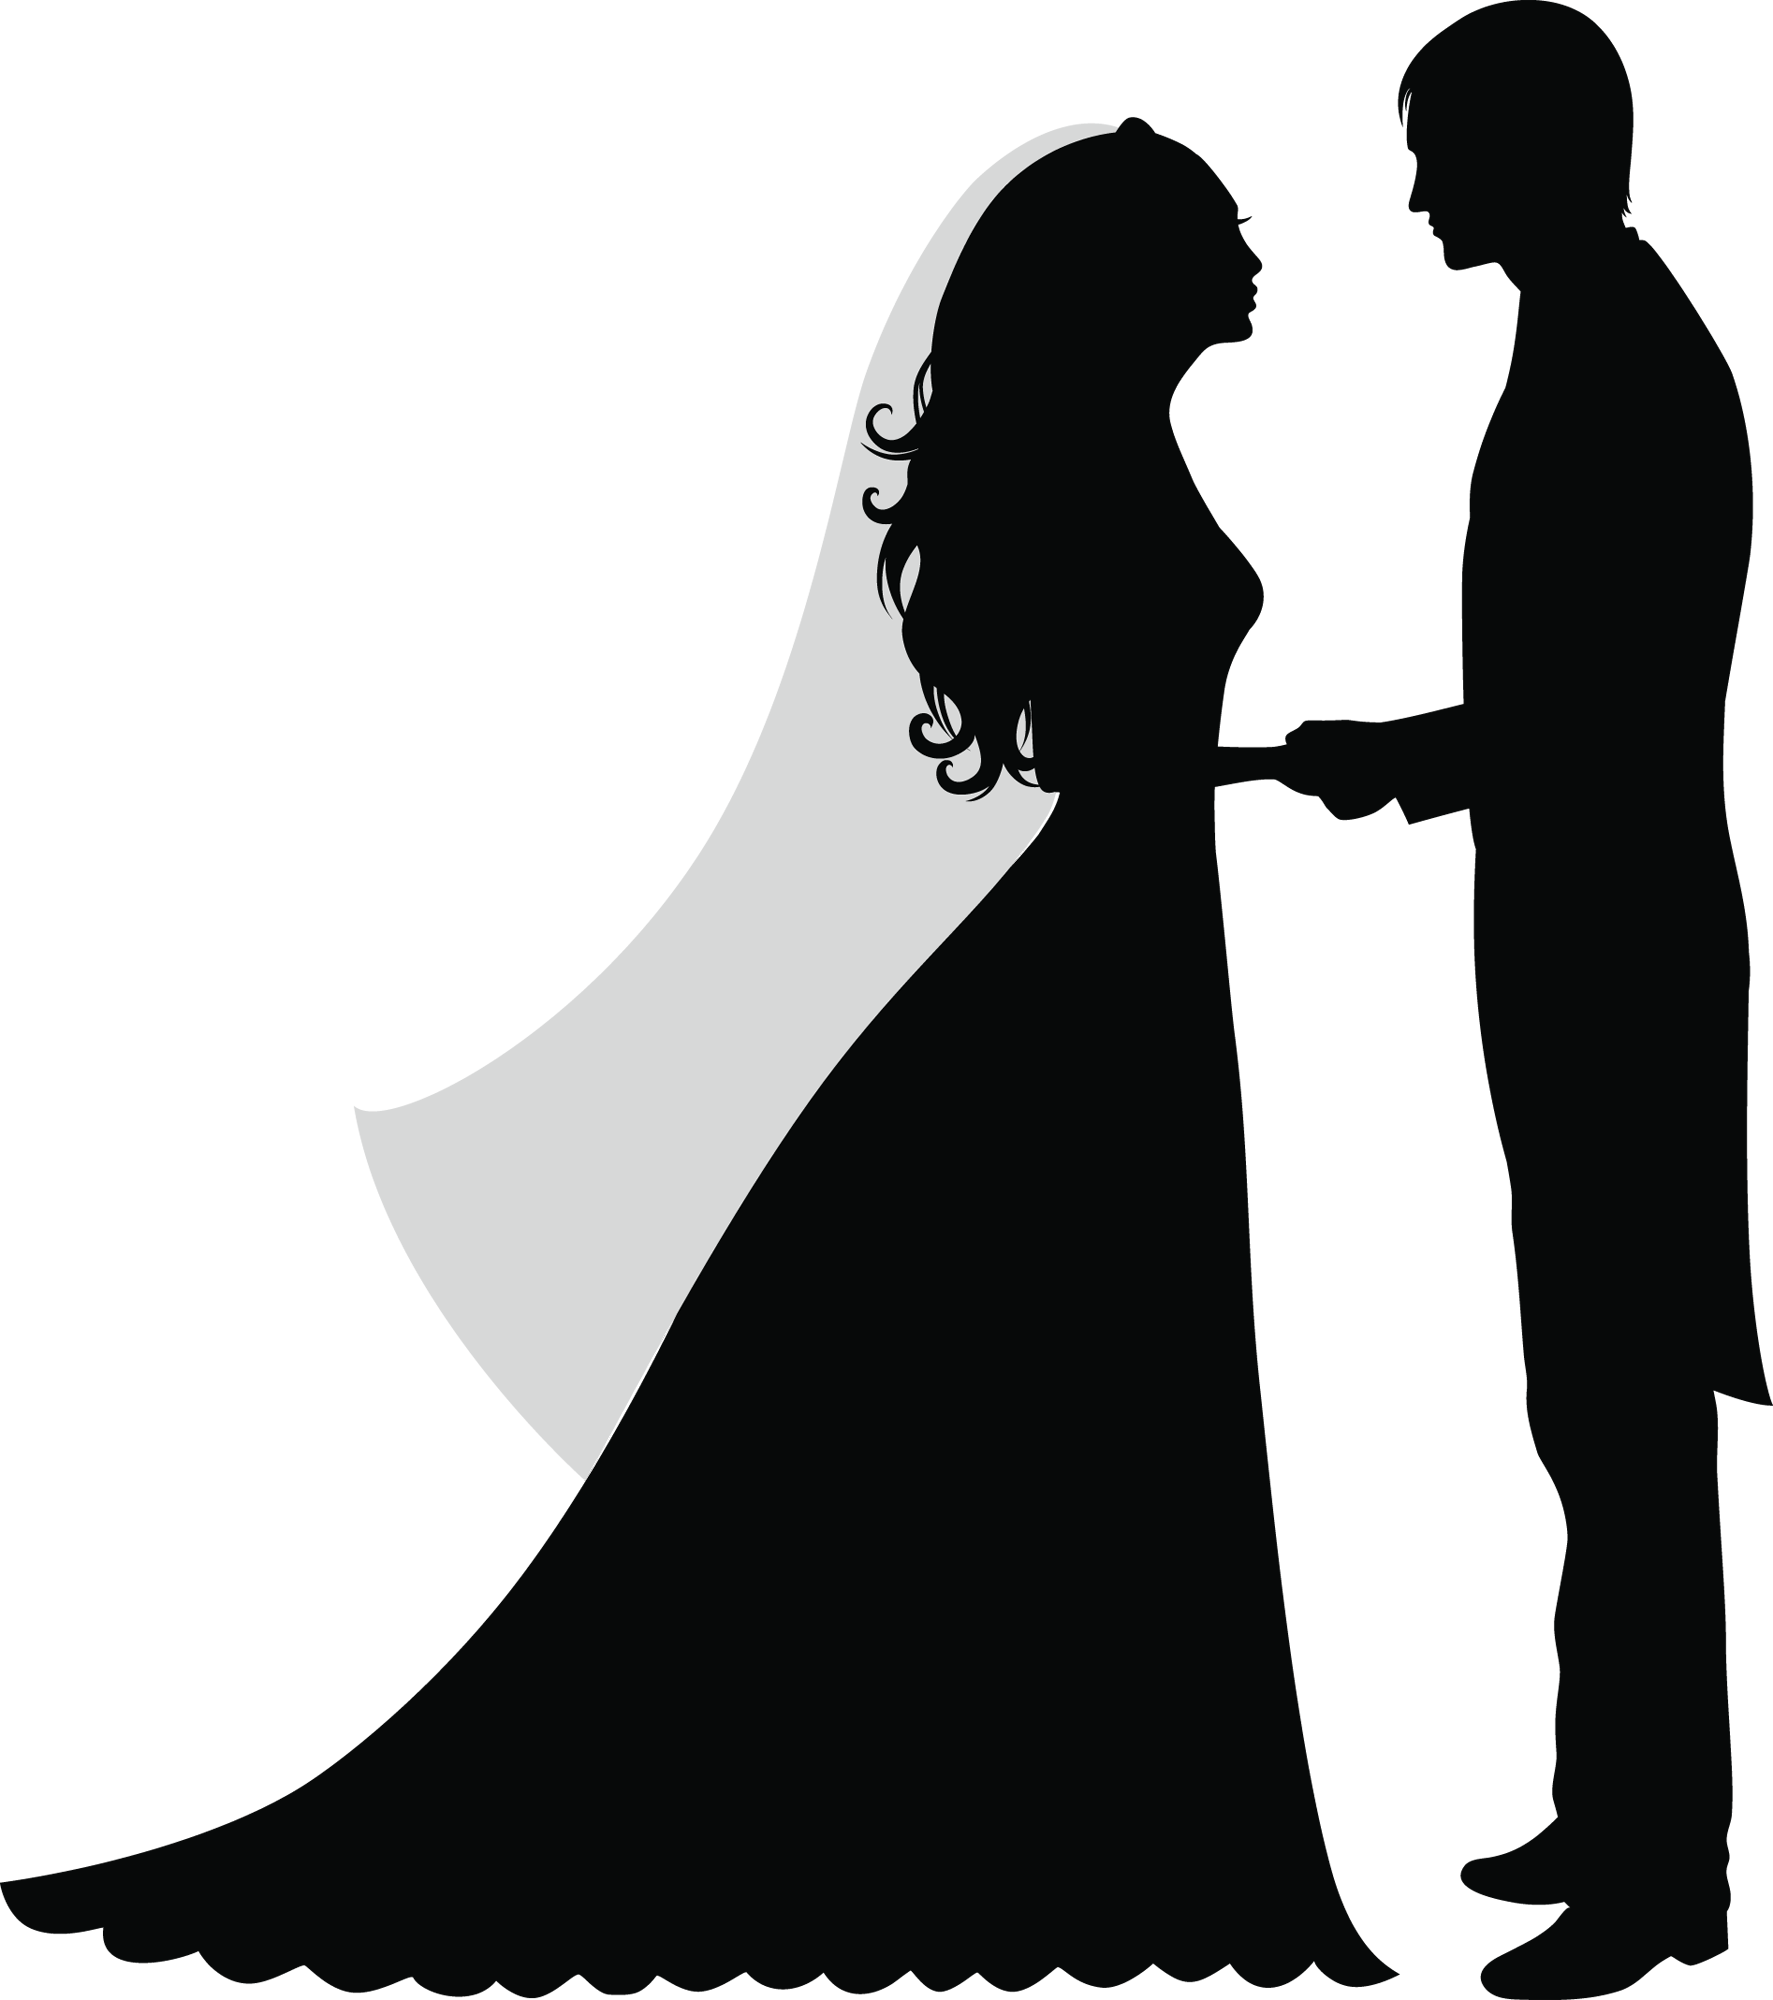 Wedding silhouette png. Casamento pinterest stenciling silhouettes